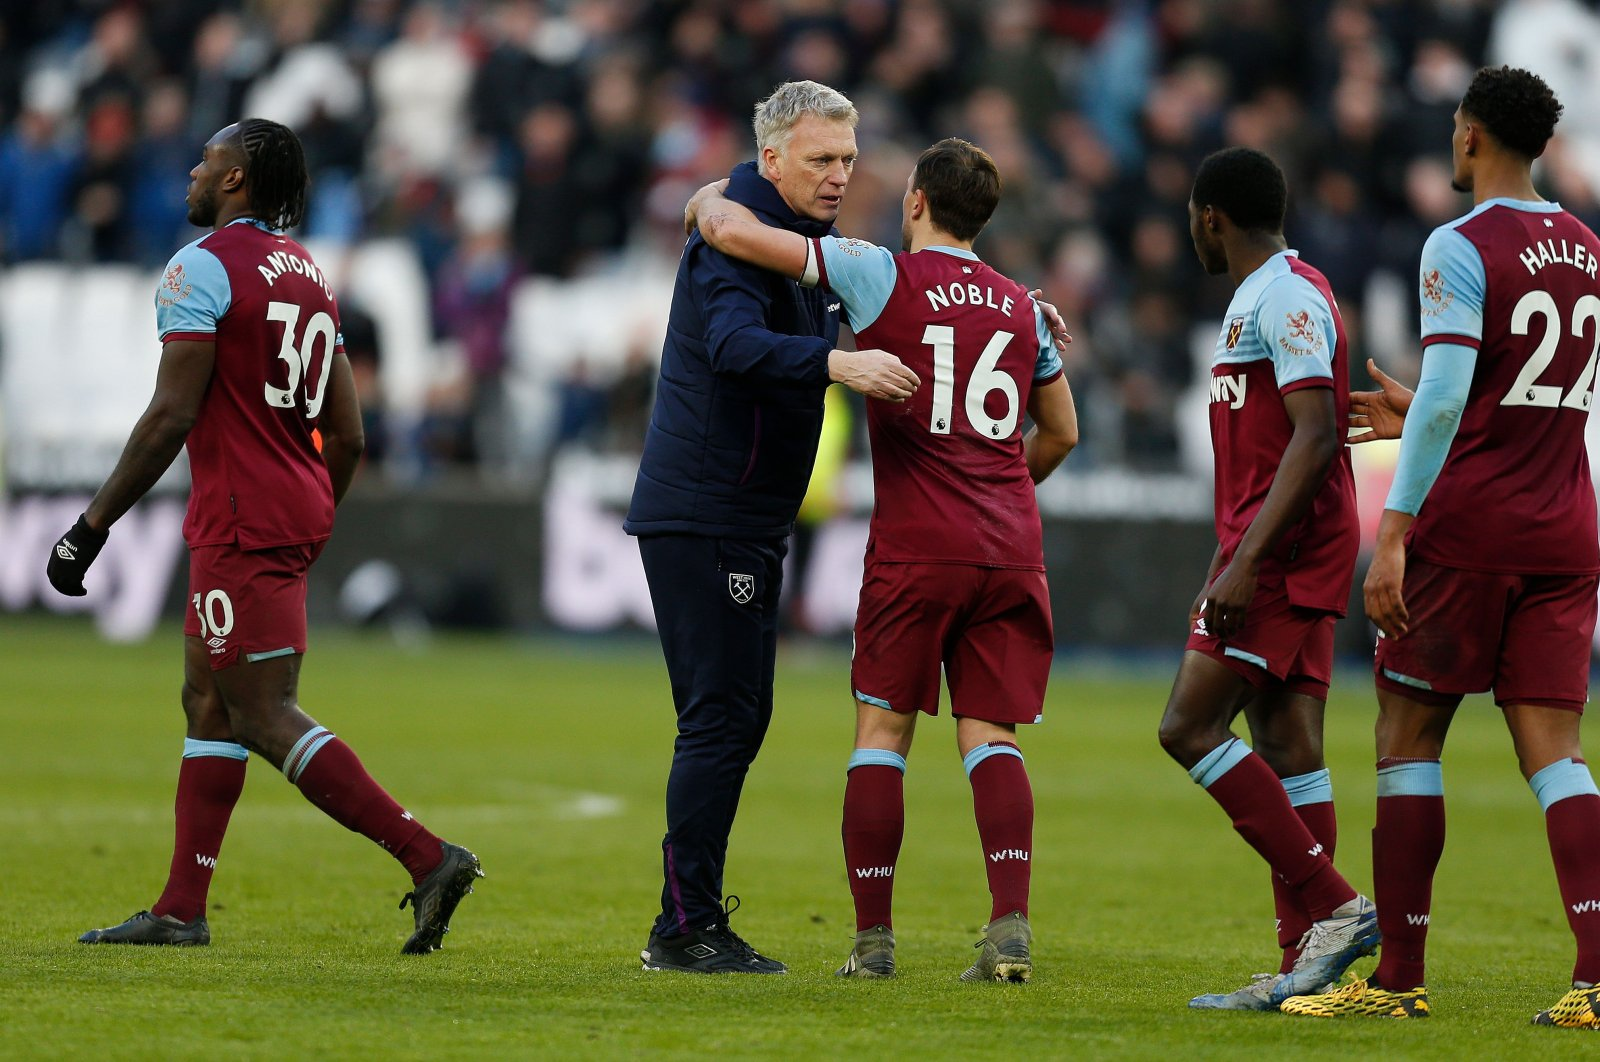 West Ham United's manager David Moyes congratulates West Ham United players after the English Premier League football match between West Ham United and Southampton at The London Stadium, in east London, Feb. 29, 2020. (AFP Photo)